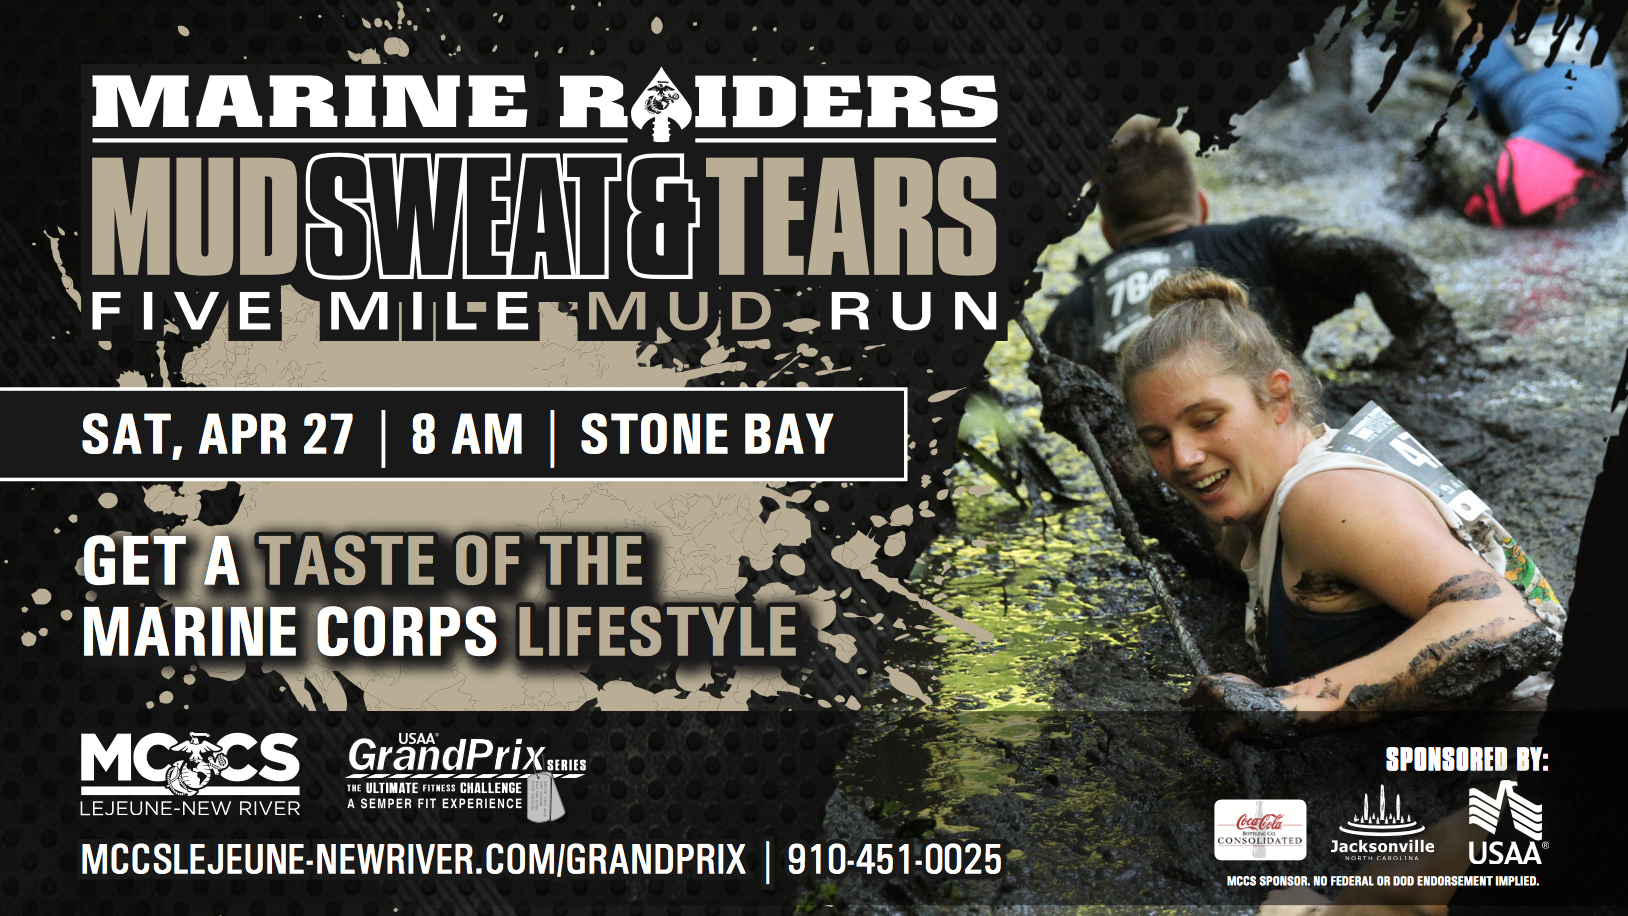 2019 Marine Raiders Mud, Sweat & Tears